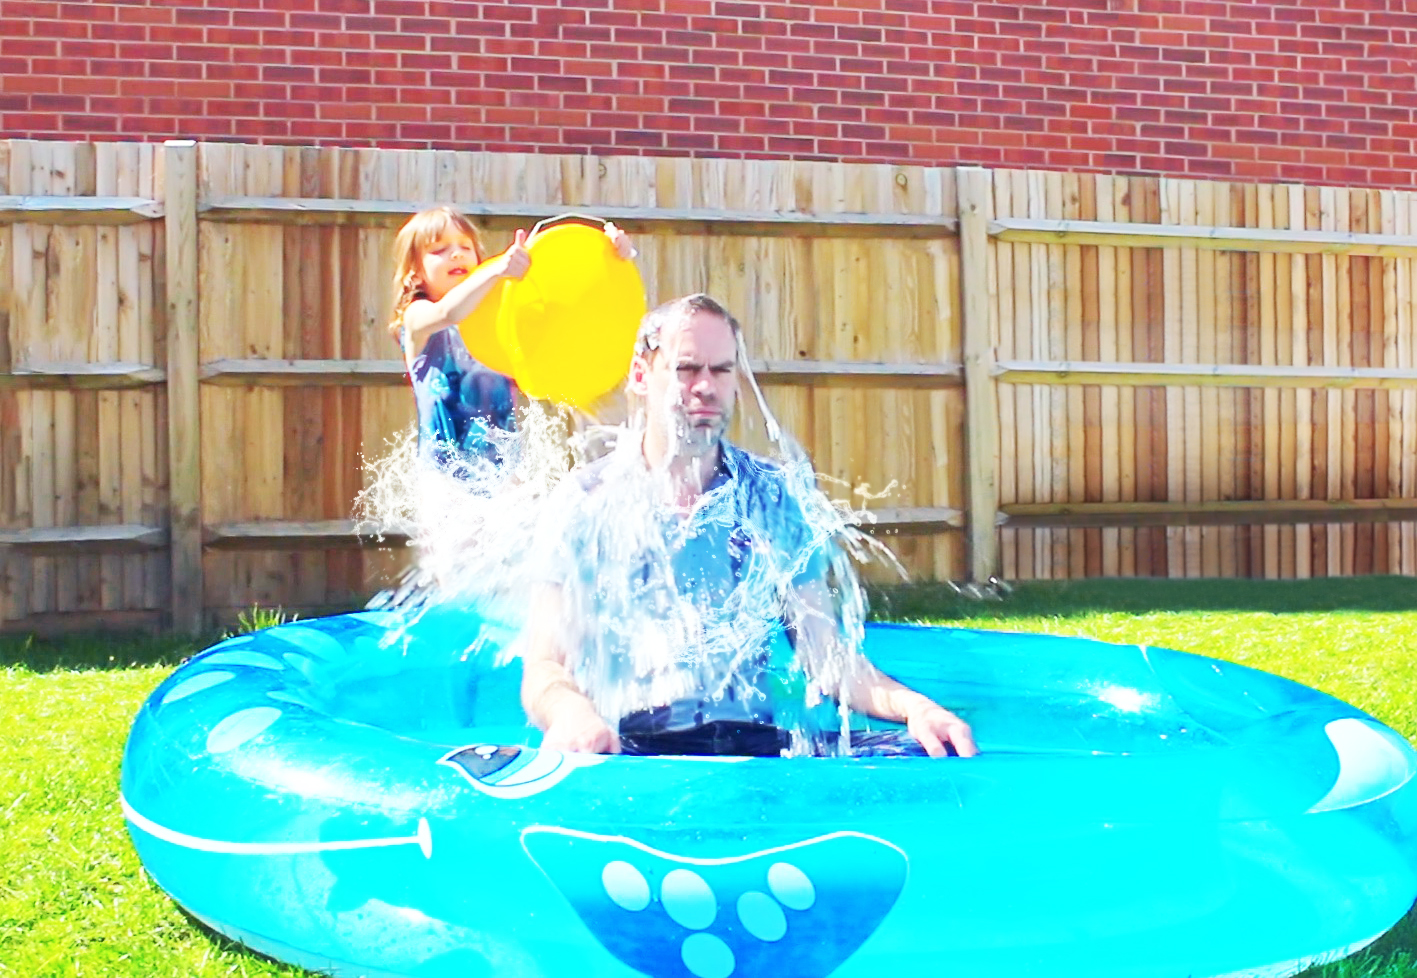 paddling pool, paddling pools, garden toys, hot weather, dad blog, dadbloguk, sahd, wahd, parenting